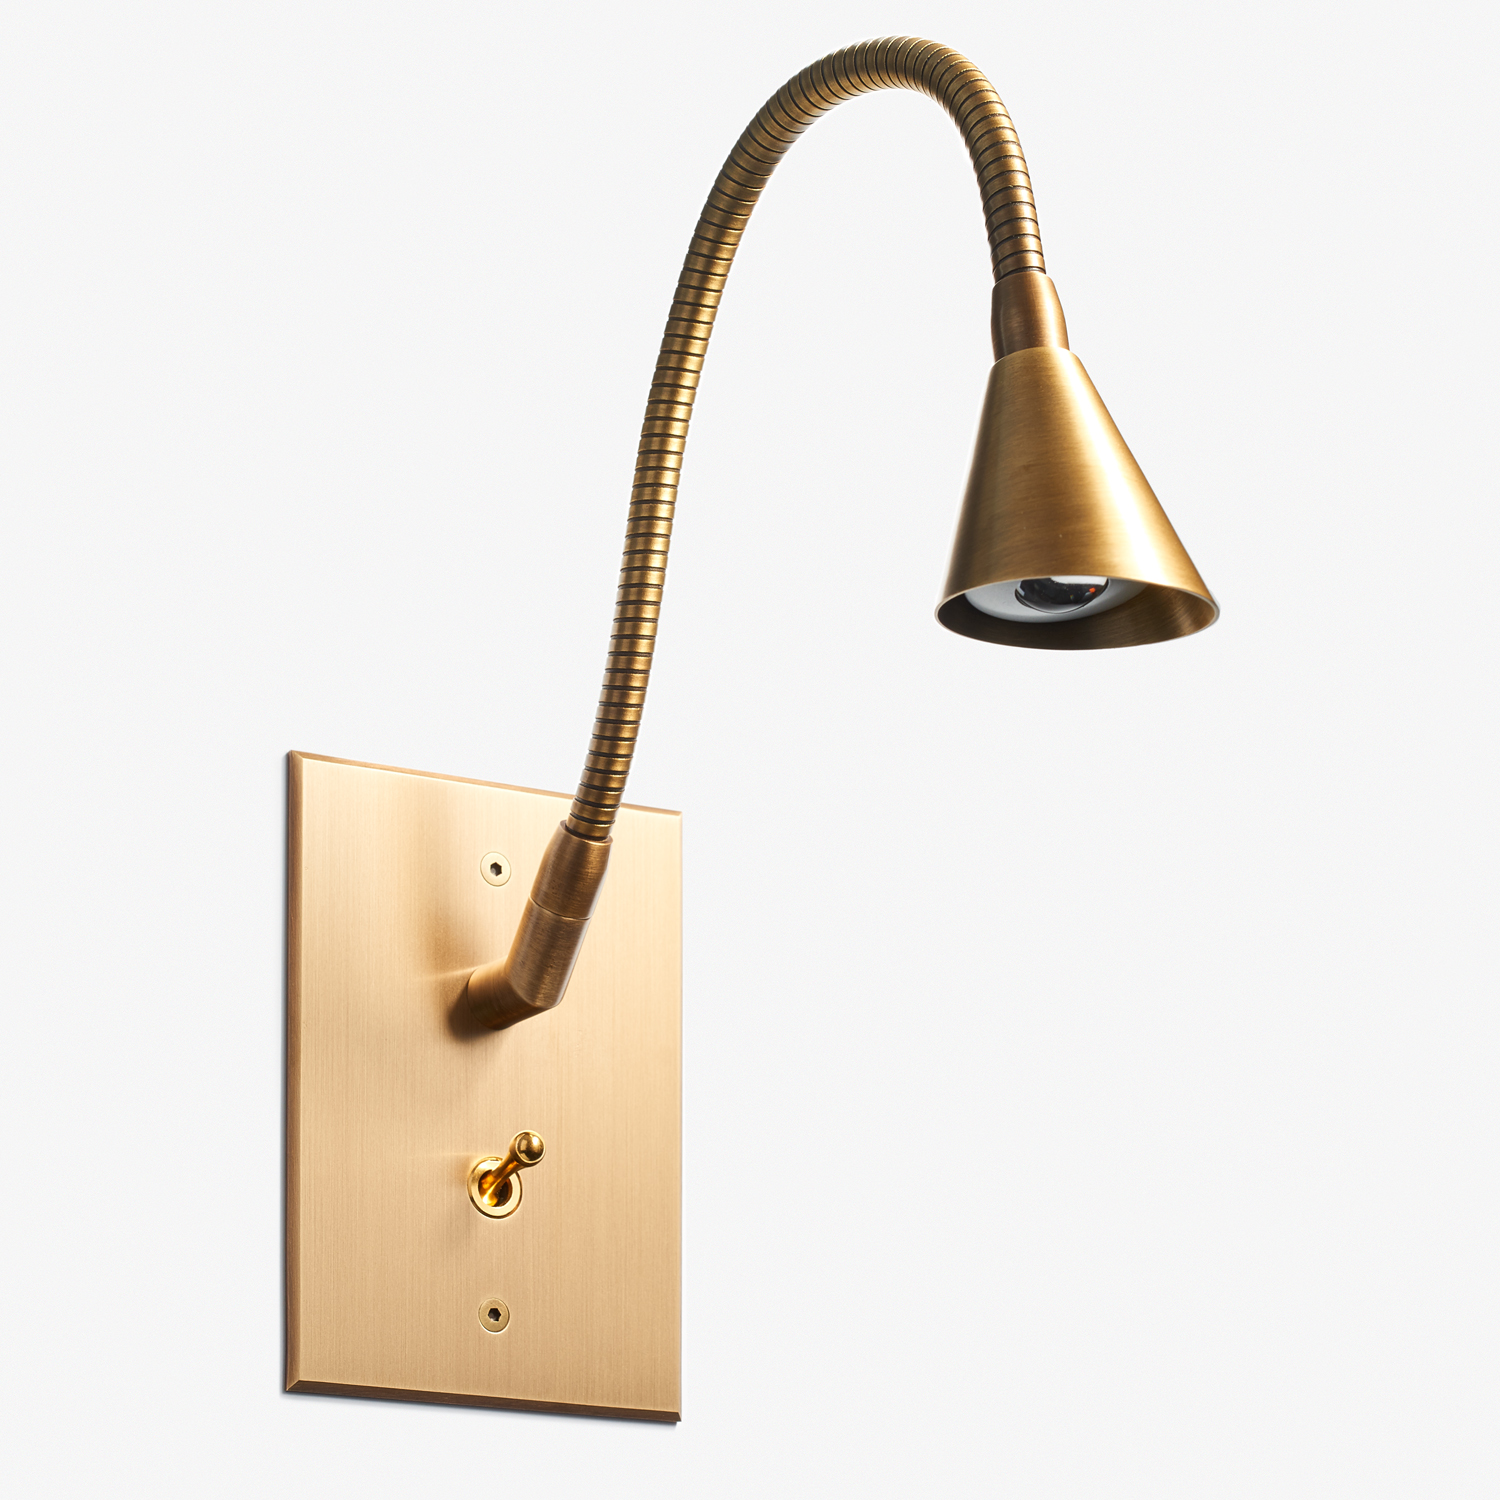 82 x 117 - Tulipe Reading Lamp - Beveled Cone - Bronze Médaille Clair Vernis Mat.jpg